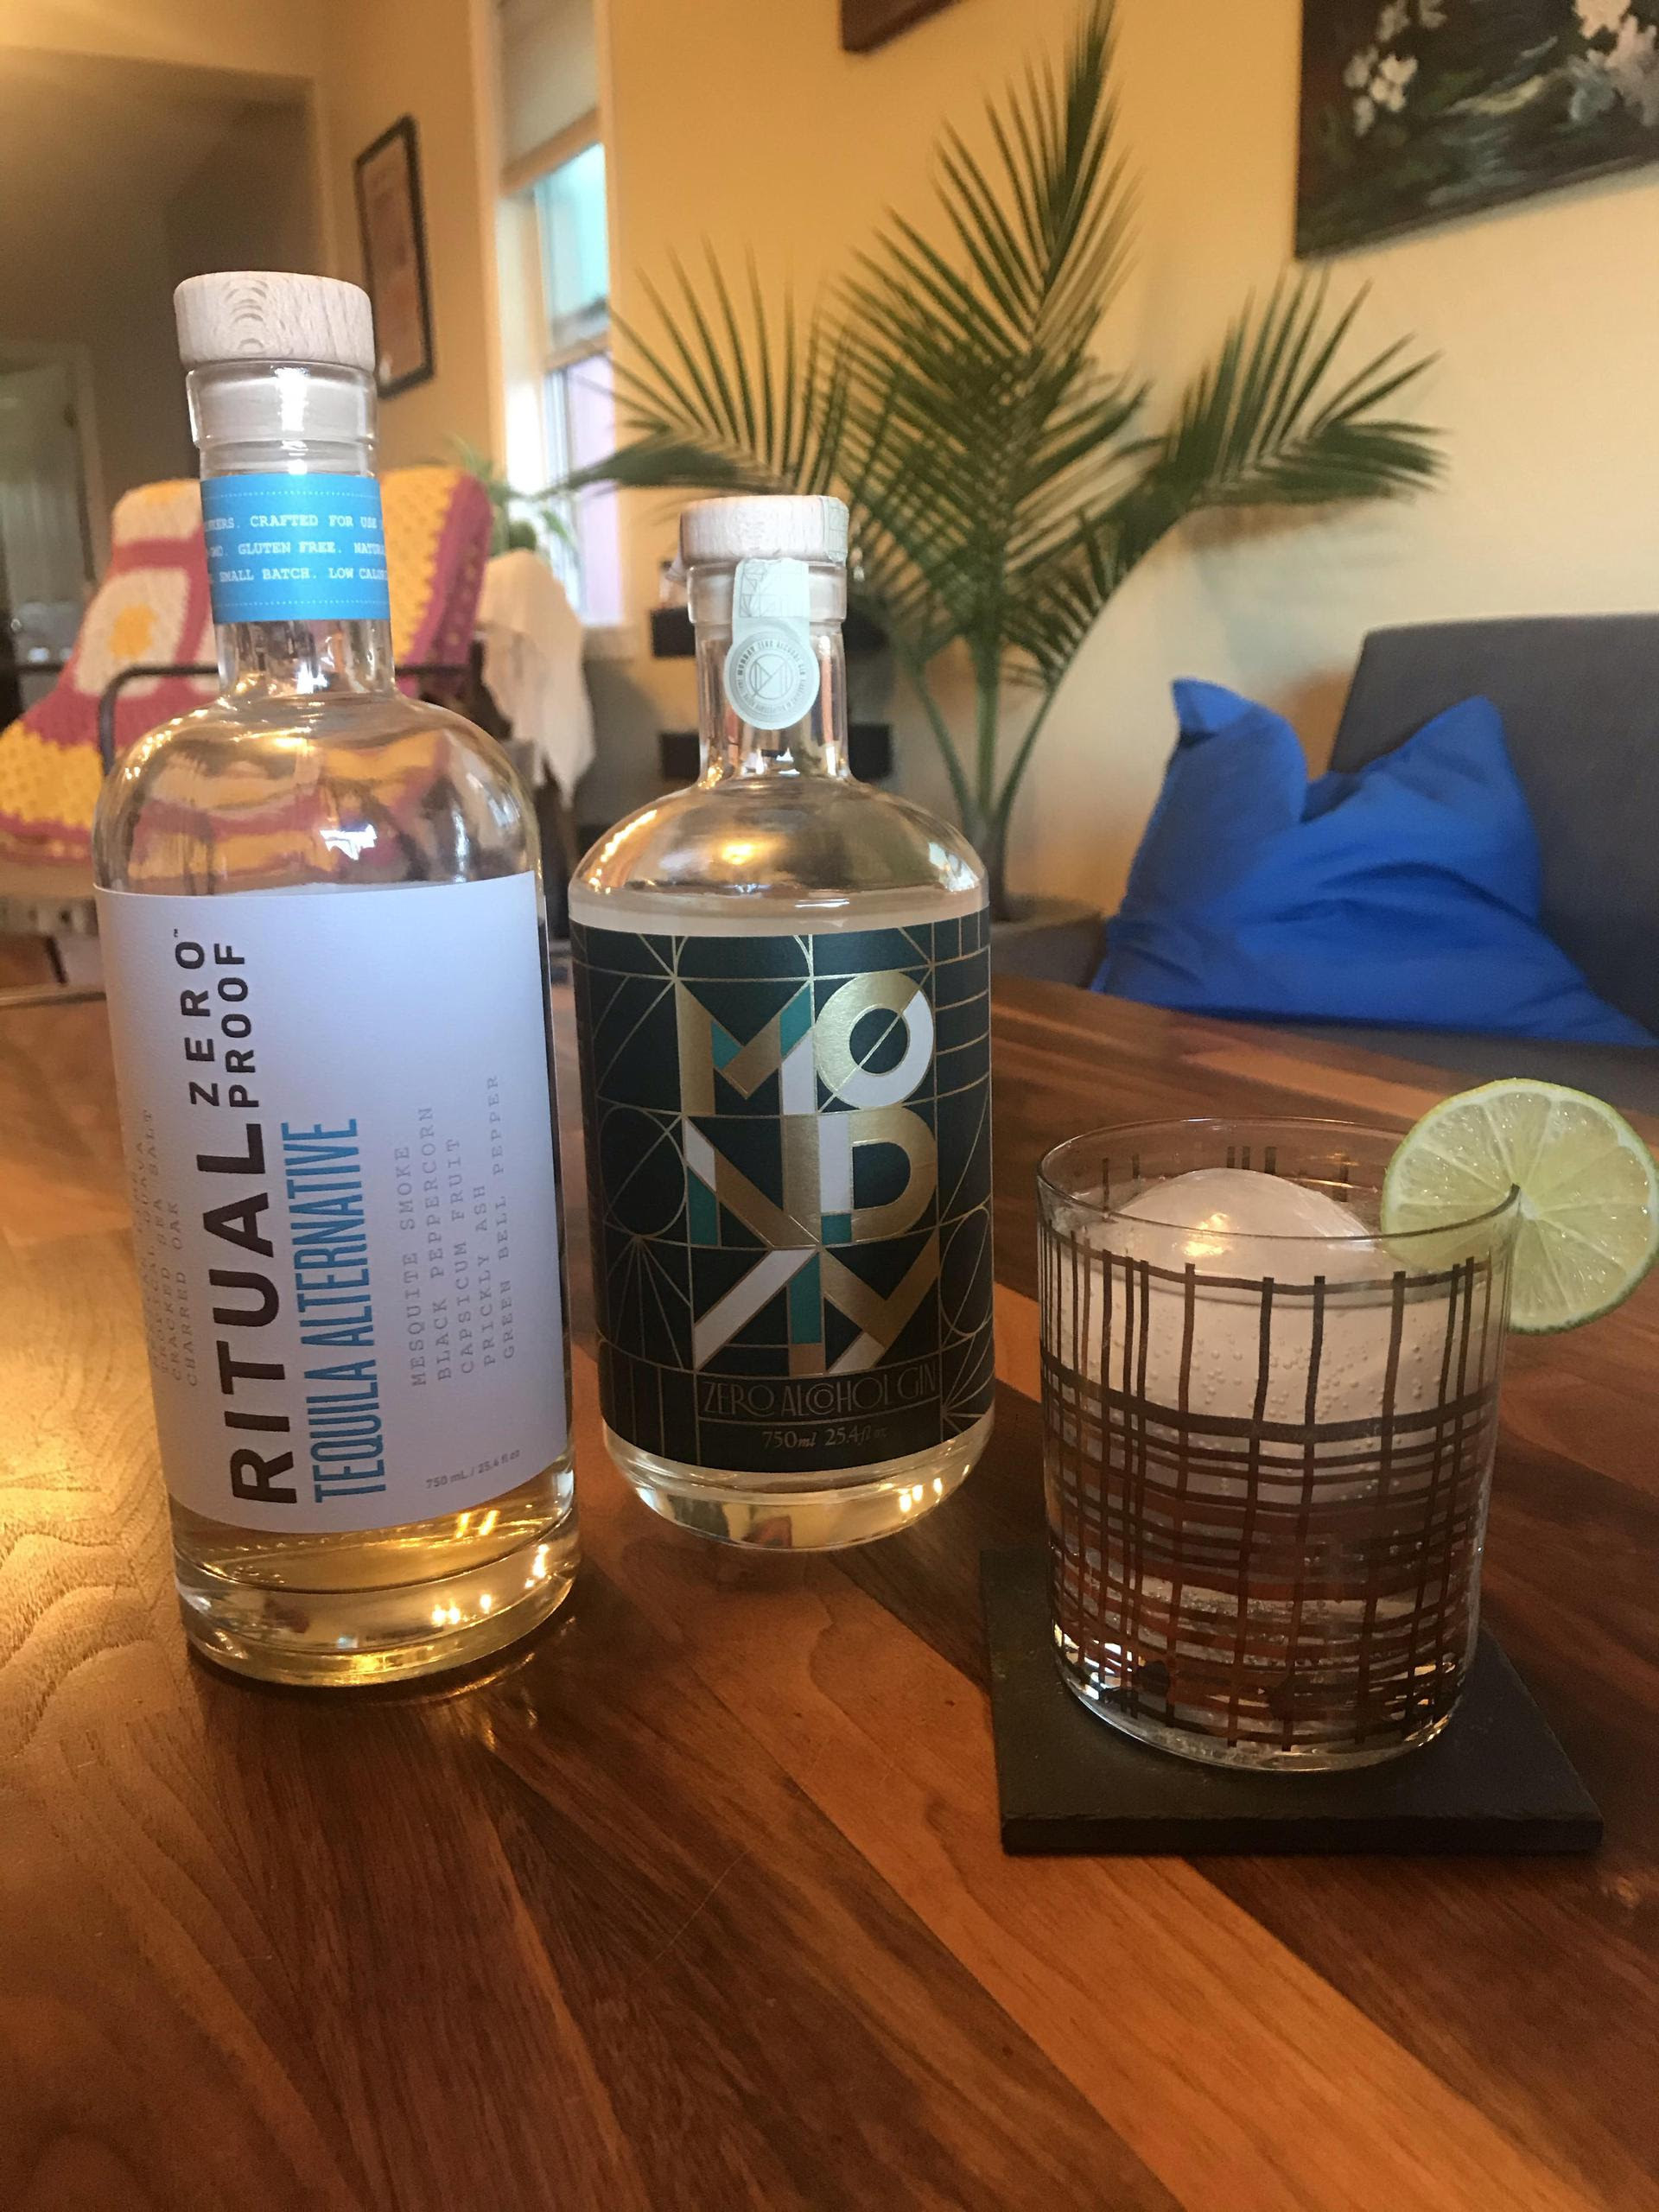 bottles of the non-alcoholic tequila and gin next to a mocktail